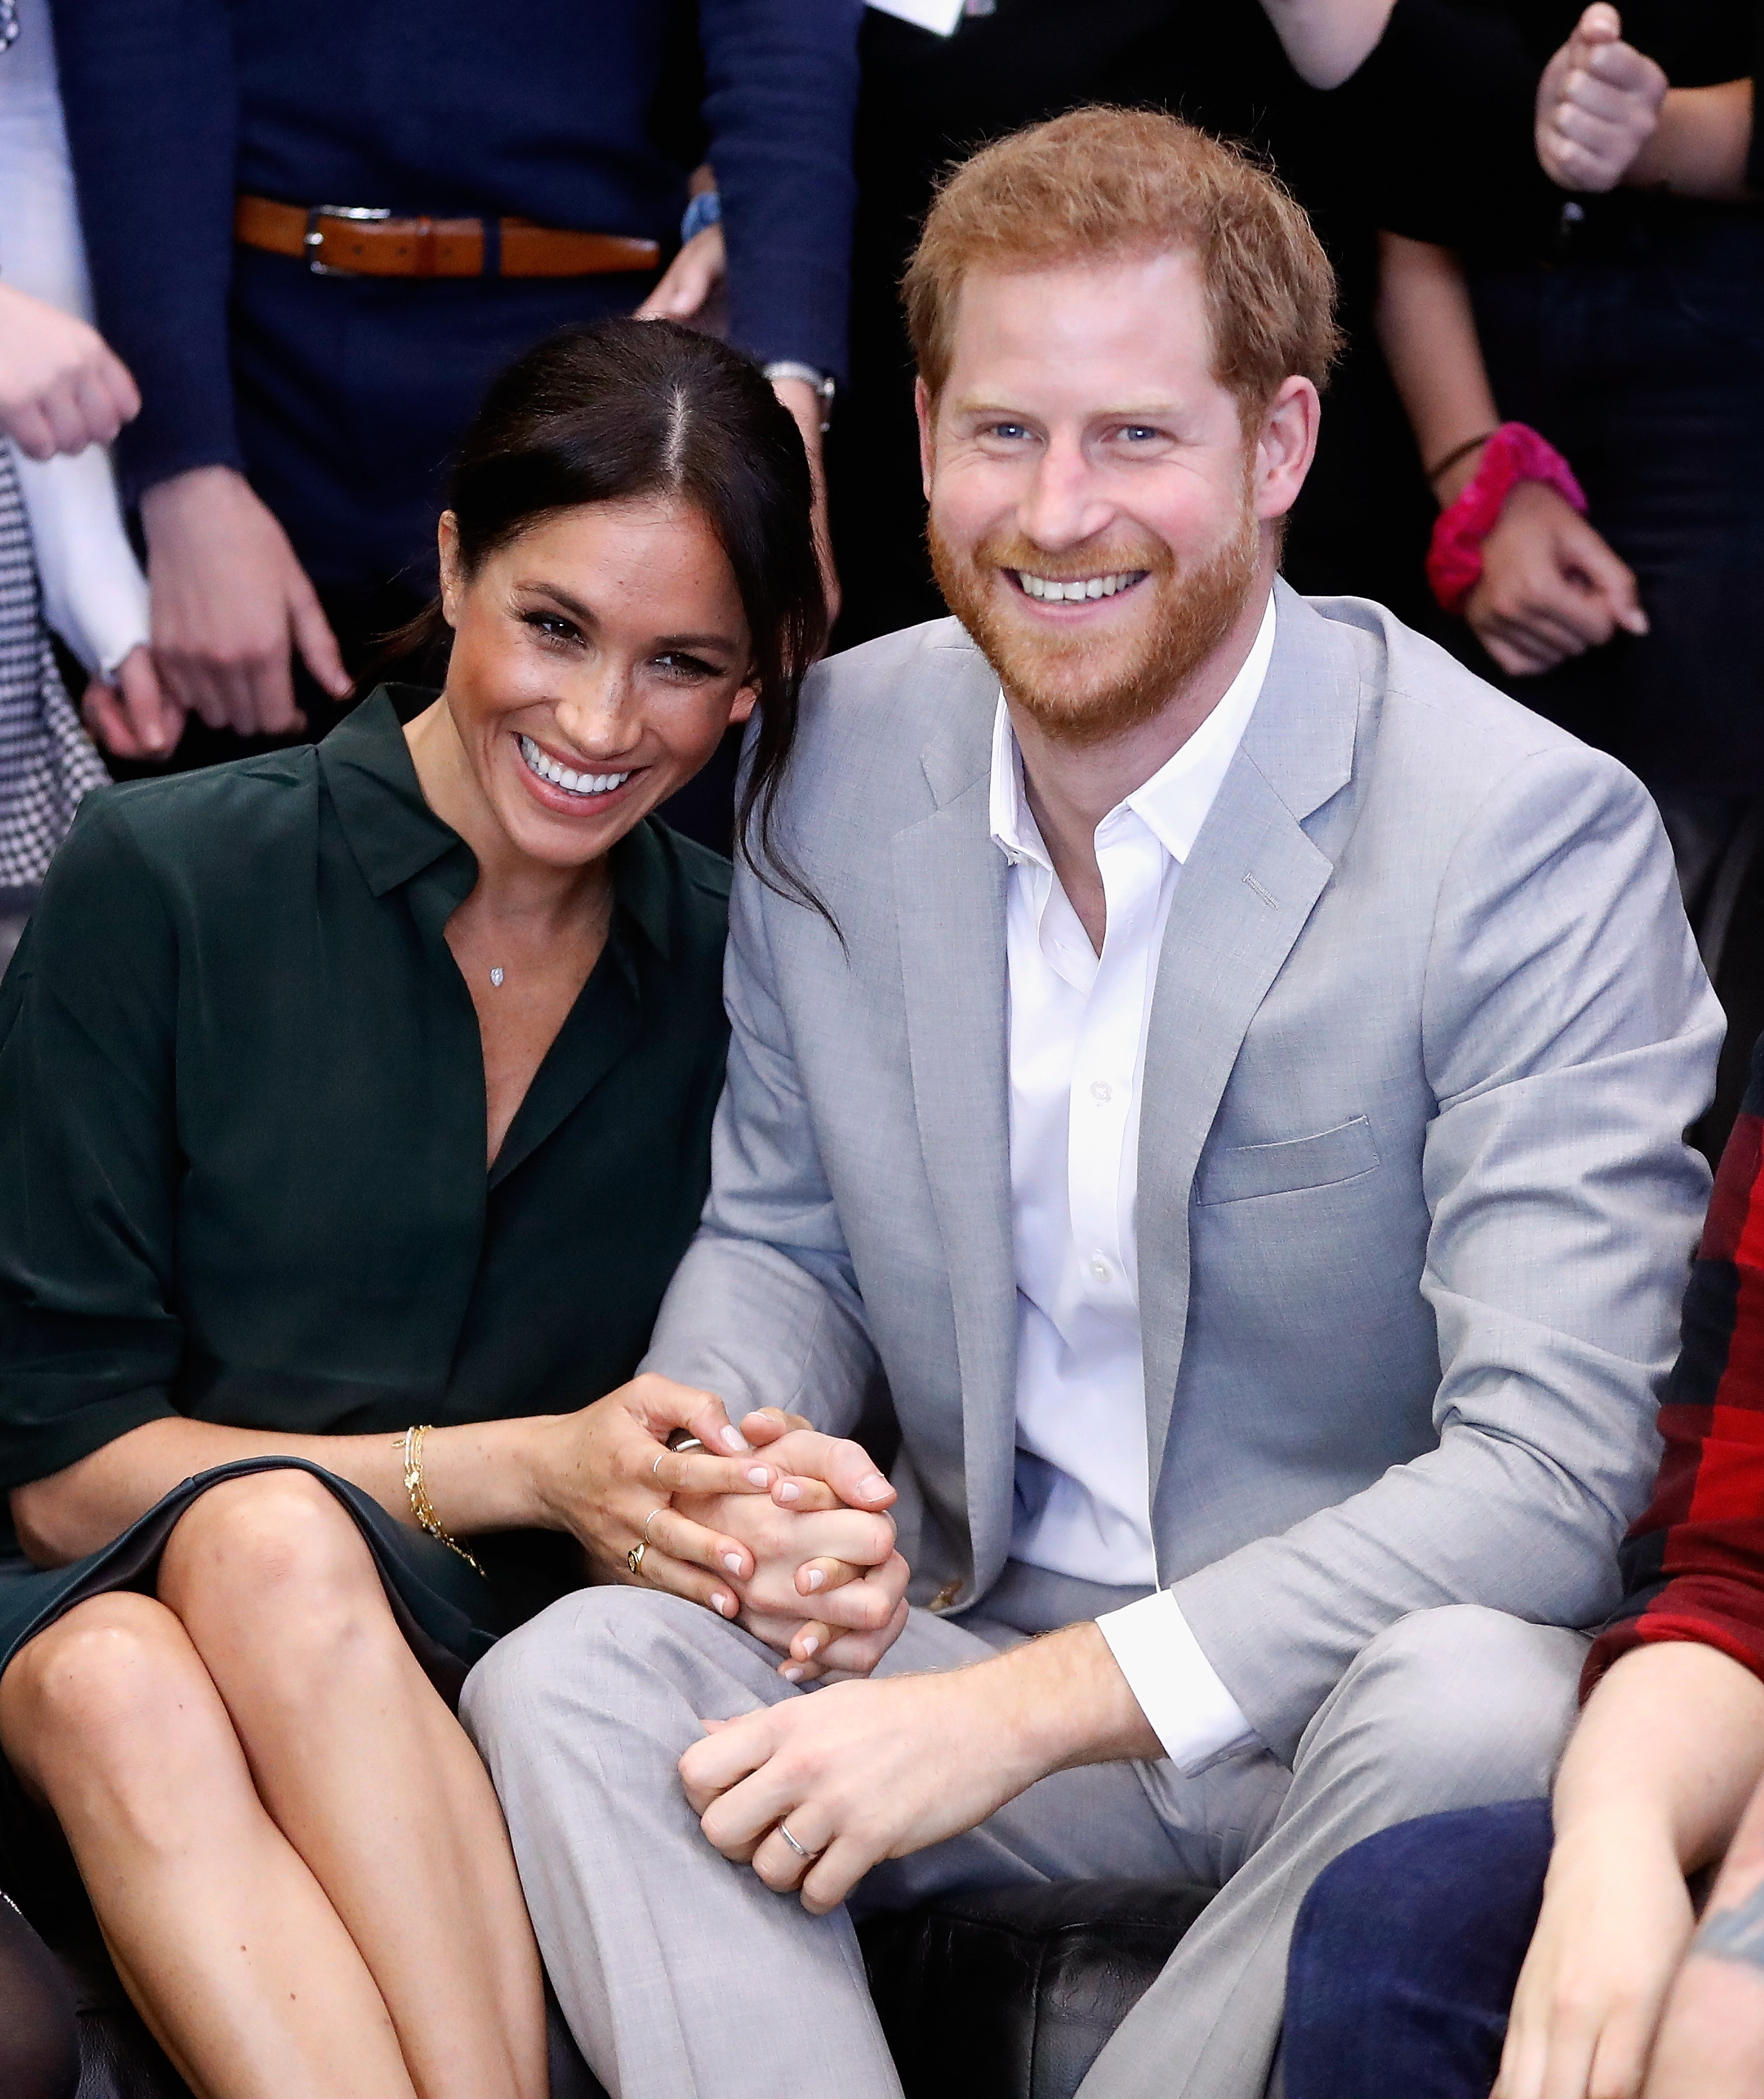 The Duke and Duchess of Sussex Prince Harry and Meghan Markle (Source: Getty Images)